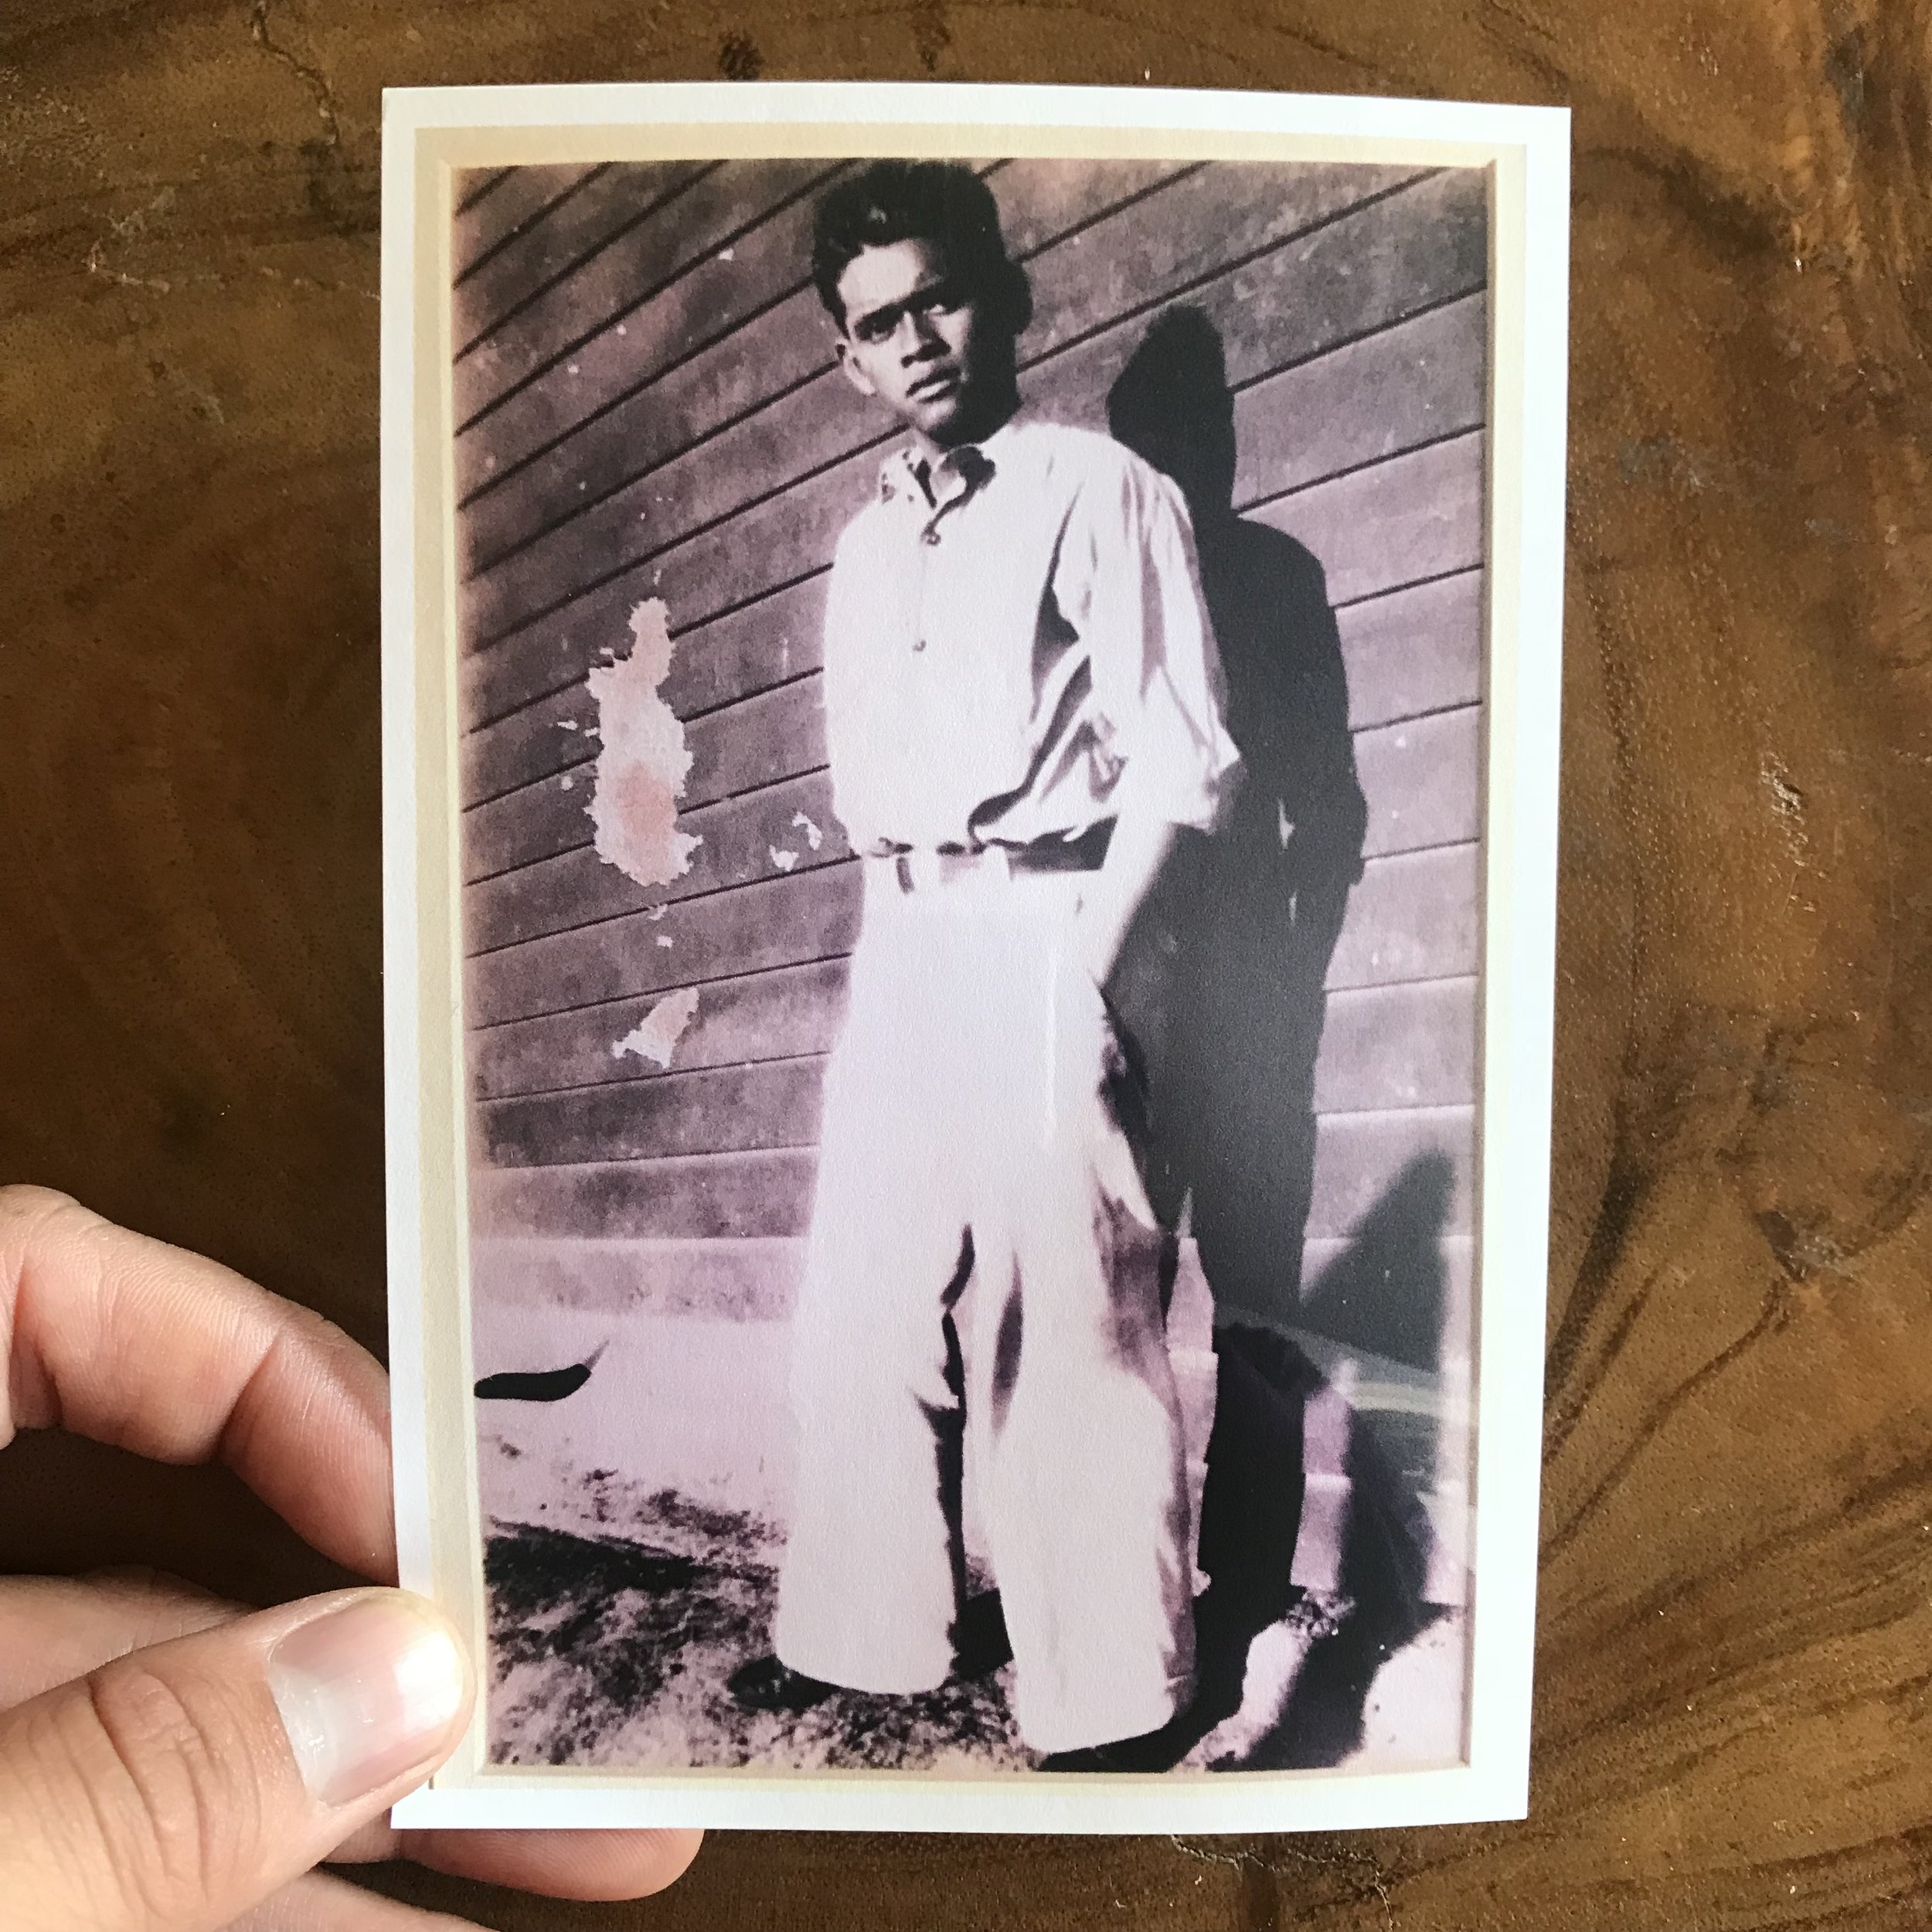 """My dad, Honorio Silva Carlon (1912-2008) circa 1940s.  My dad worked in the fields for over 50 years. Over a century of backbreaking labor feeding the hungry mouths of America. He was a migrant worker, meaning he would migrate and live wherever the crops were in season. Over half a century of squatting down picking strawberries in the blistering sun...  My work lately has focused in many sites that had a connection to the earth, the dirt. I raked the side of a hill and crawled amidst salty shores. All these experiences and opportunities somehow make me feel I'm developing a better understanding of the earth — the way my dad knew Her.  I wanted to talk about dark, leathered brown skin in this post, but Instagram has a character limit, so I'll save that for a later pst. Whooops, that's a typo, it's supposed to say """"post,"""" but pssstt, the universal call for a Filipino, is more than appropriate."""